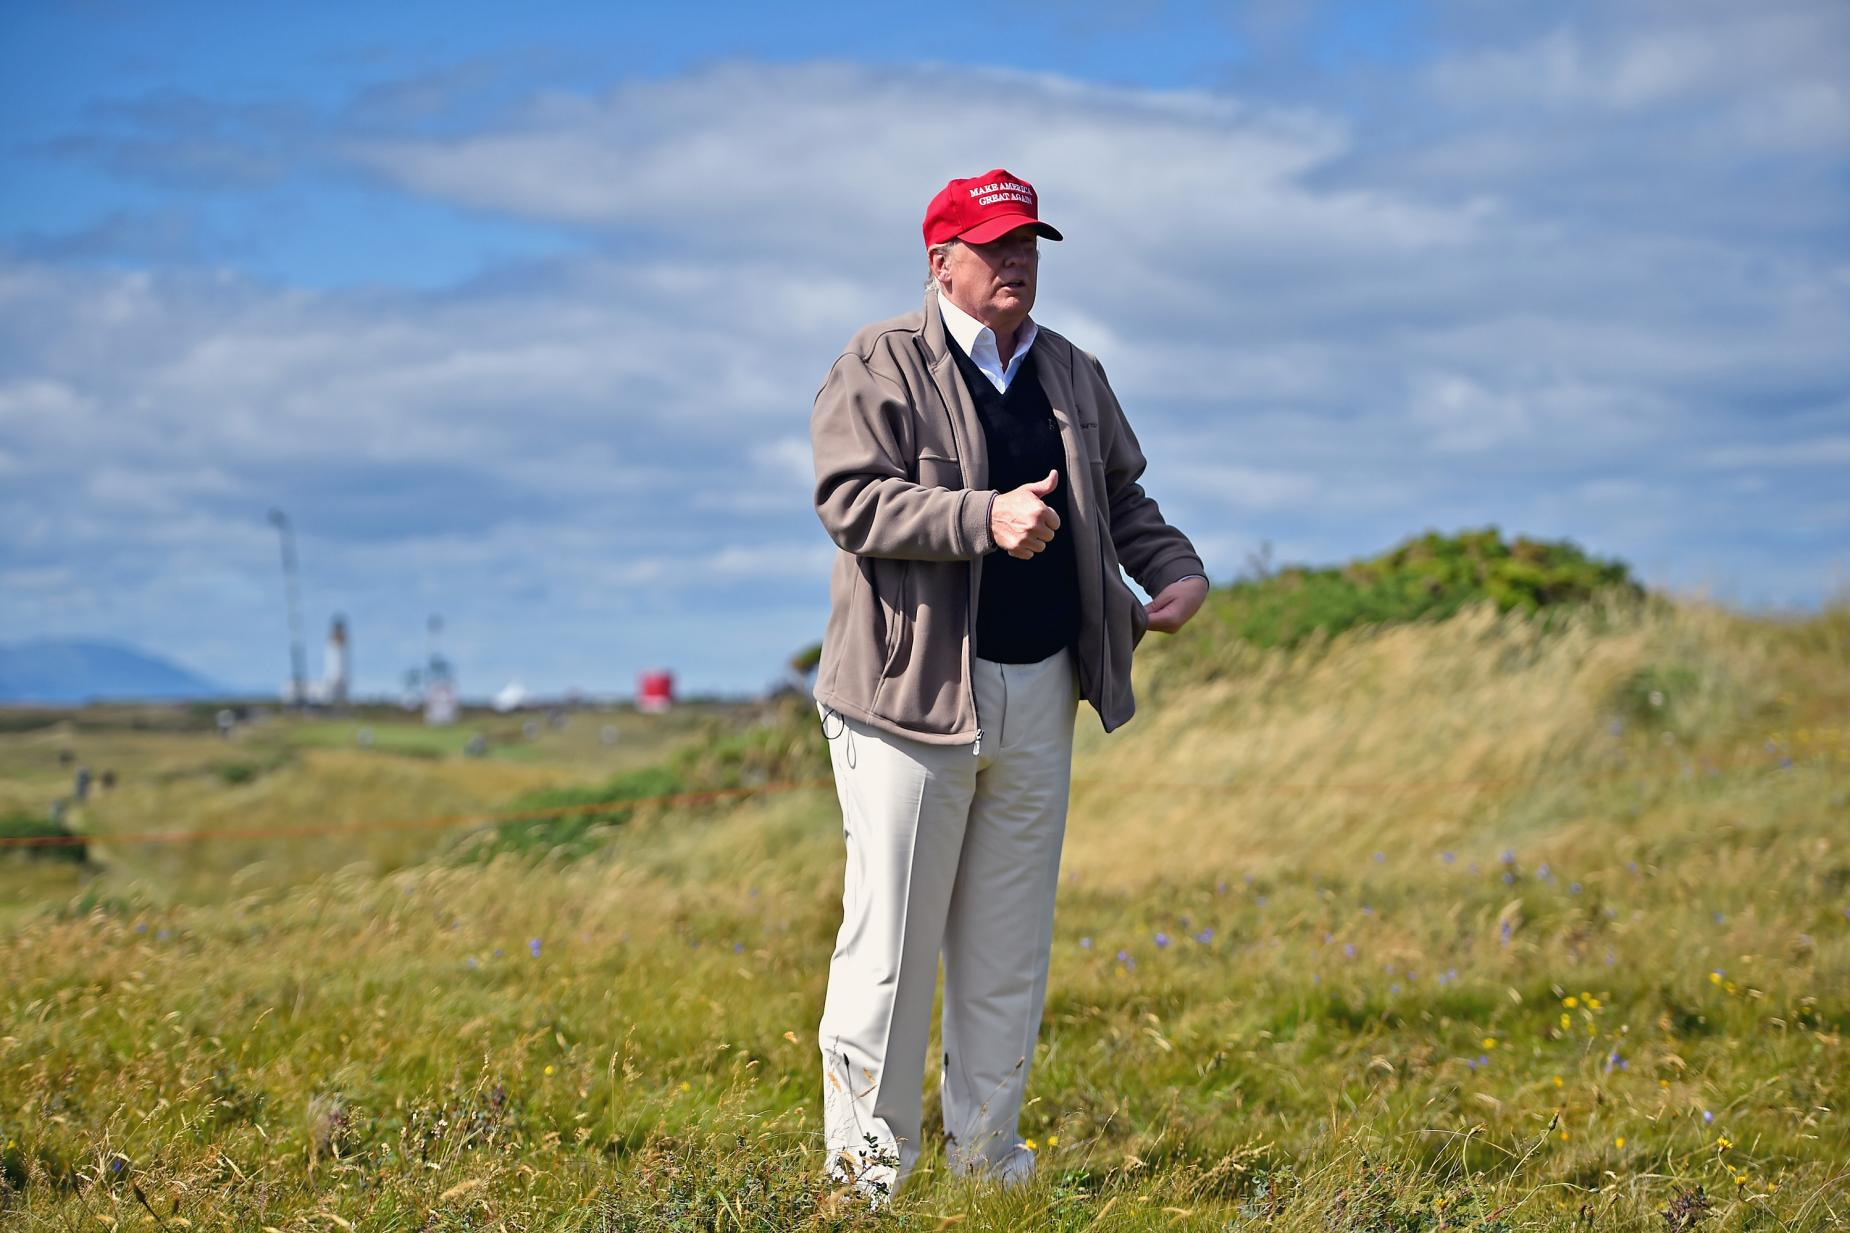 Donald-Trump-at-Turnberry.jpg